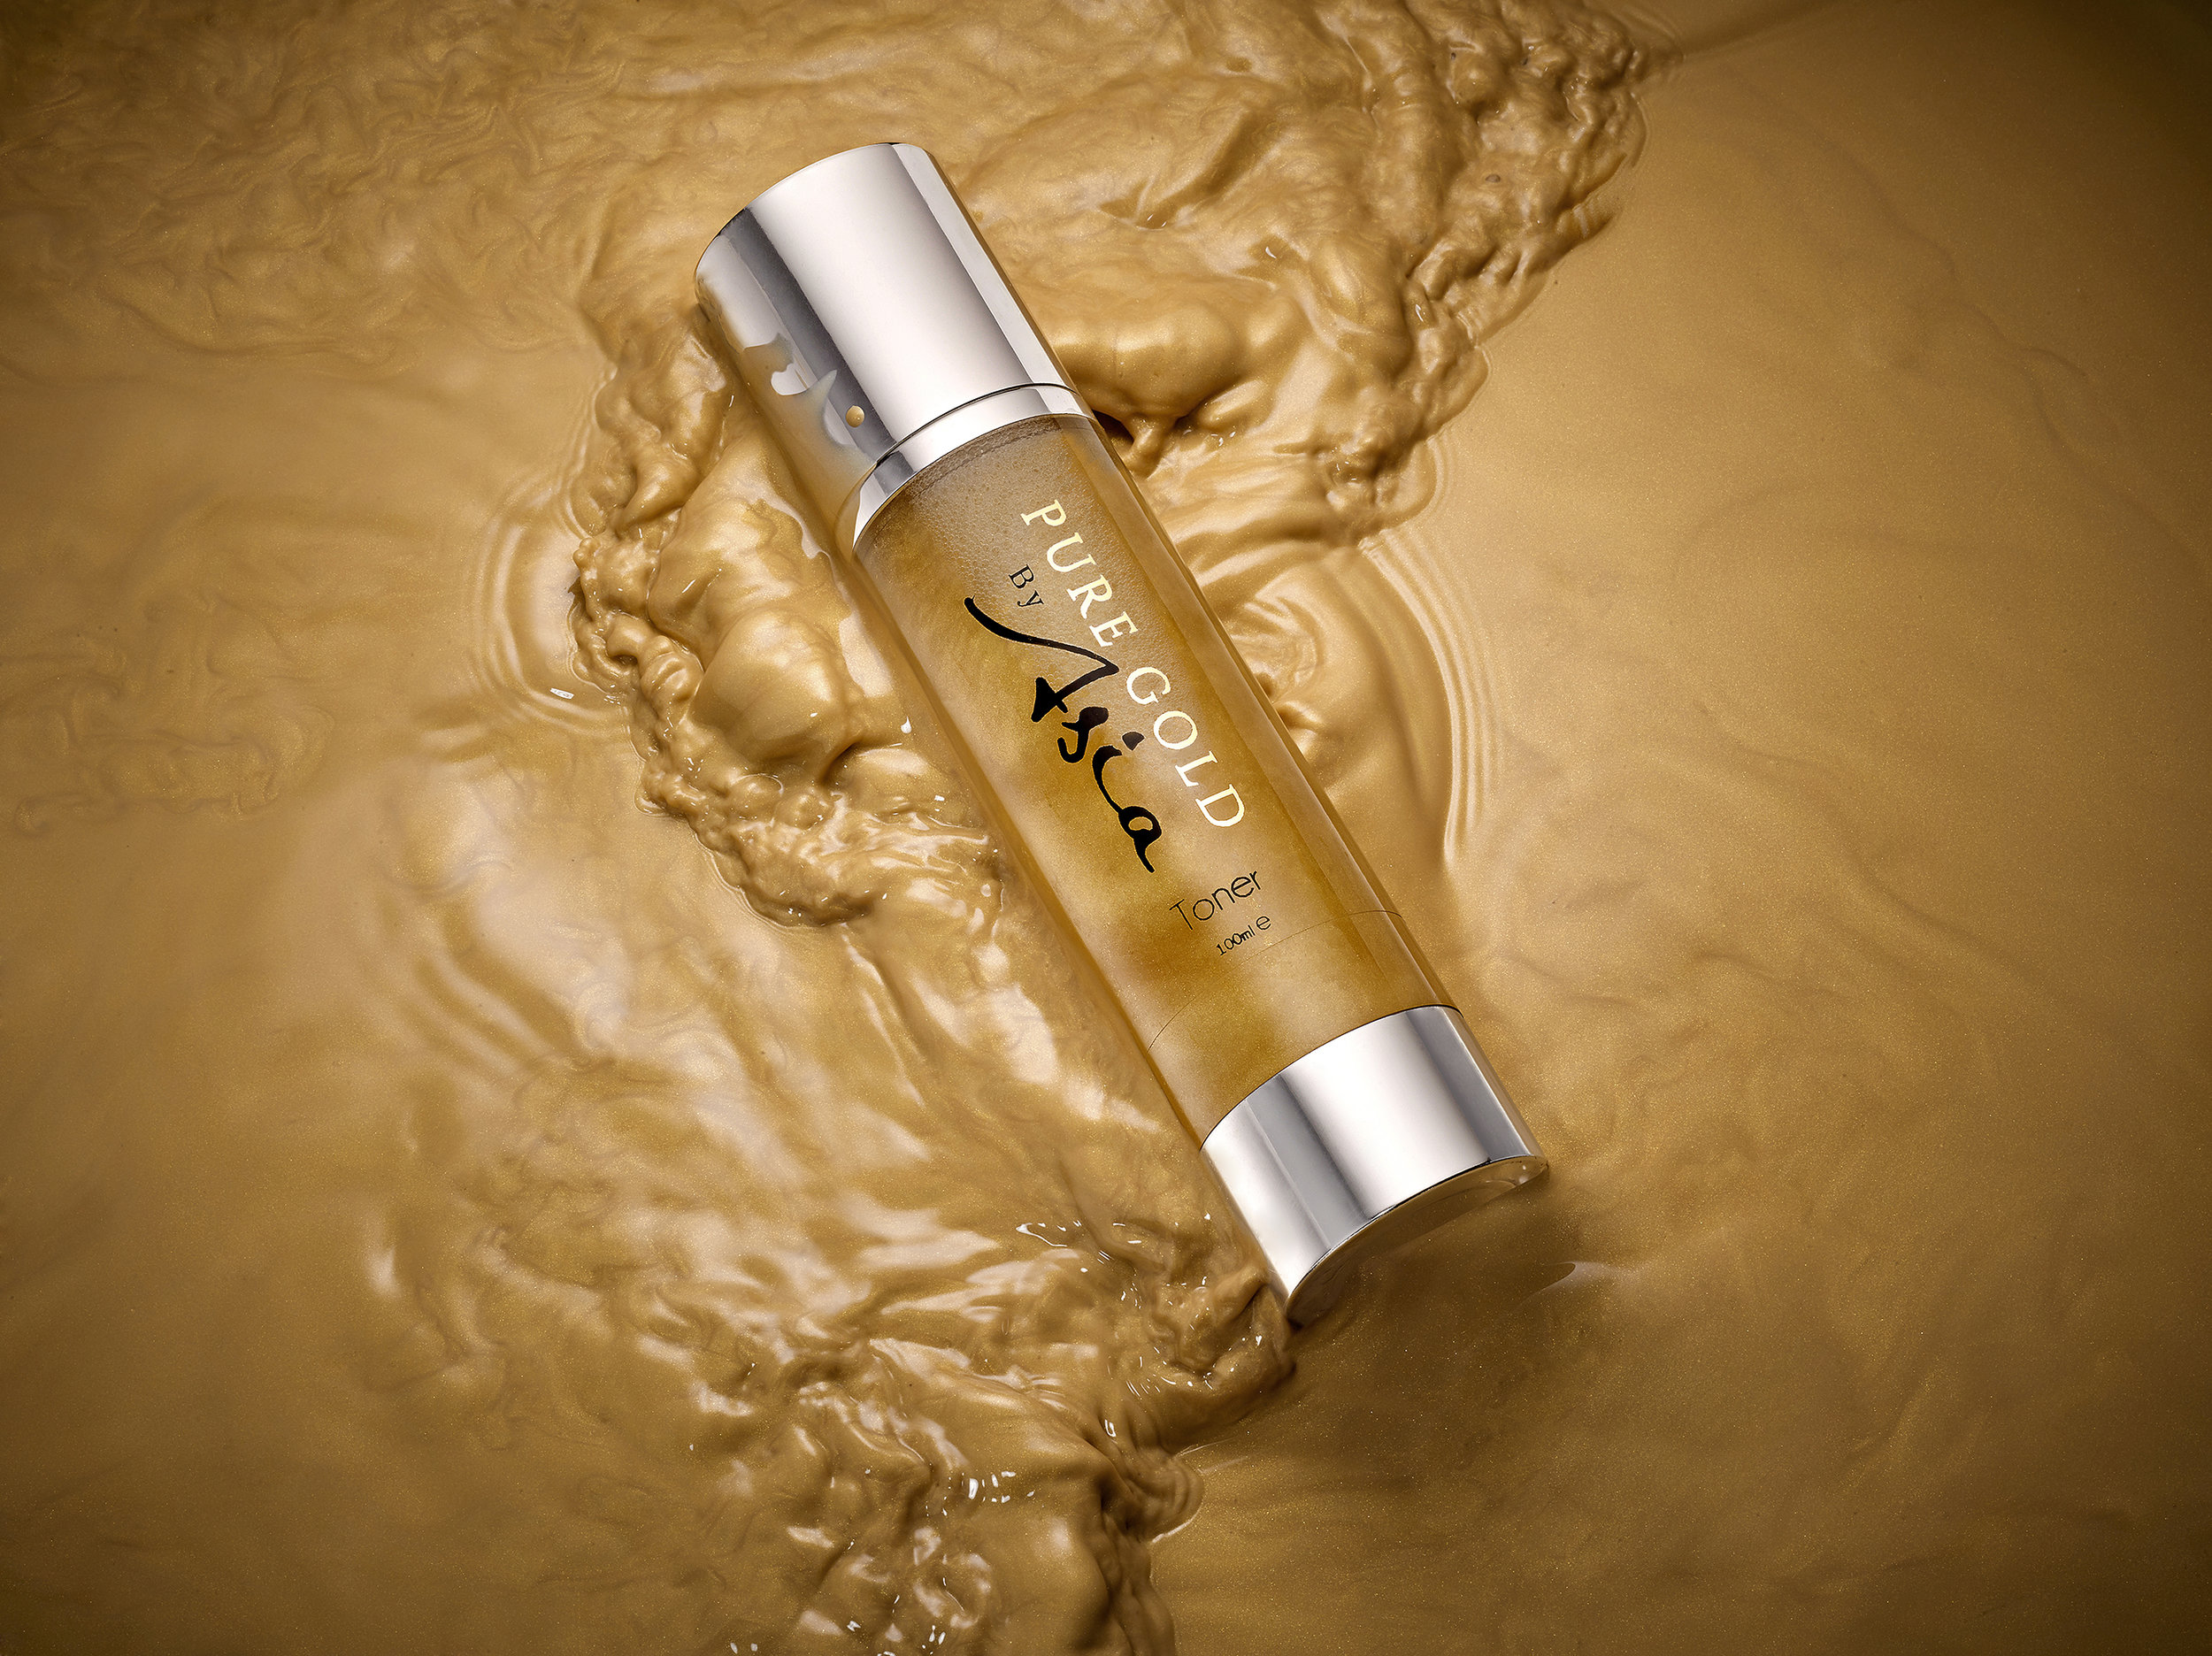 creative still life photography of liquid gold cosmetics created by London product photographer howlett photography